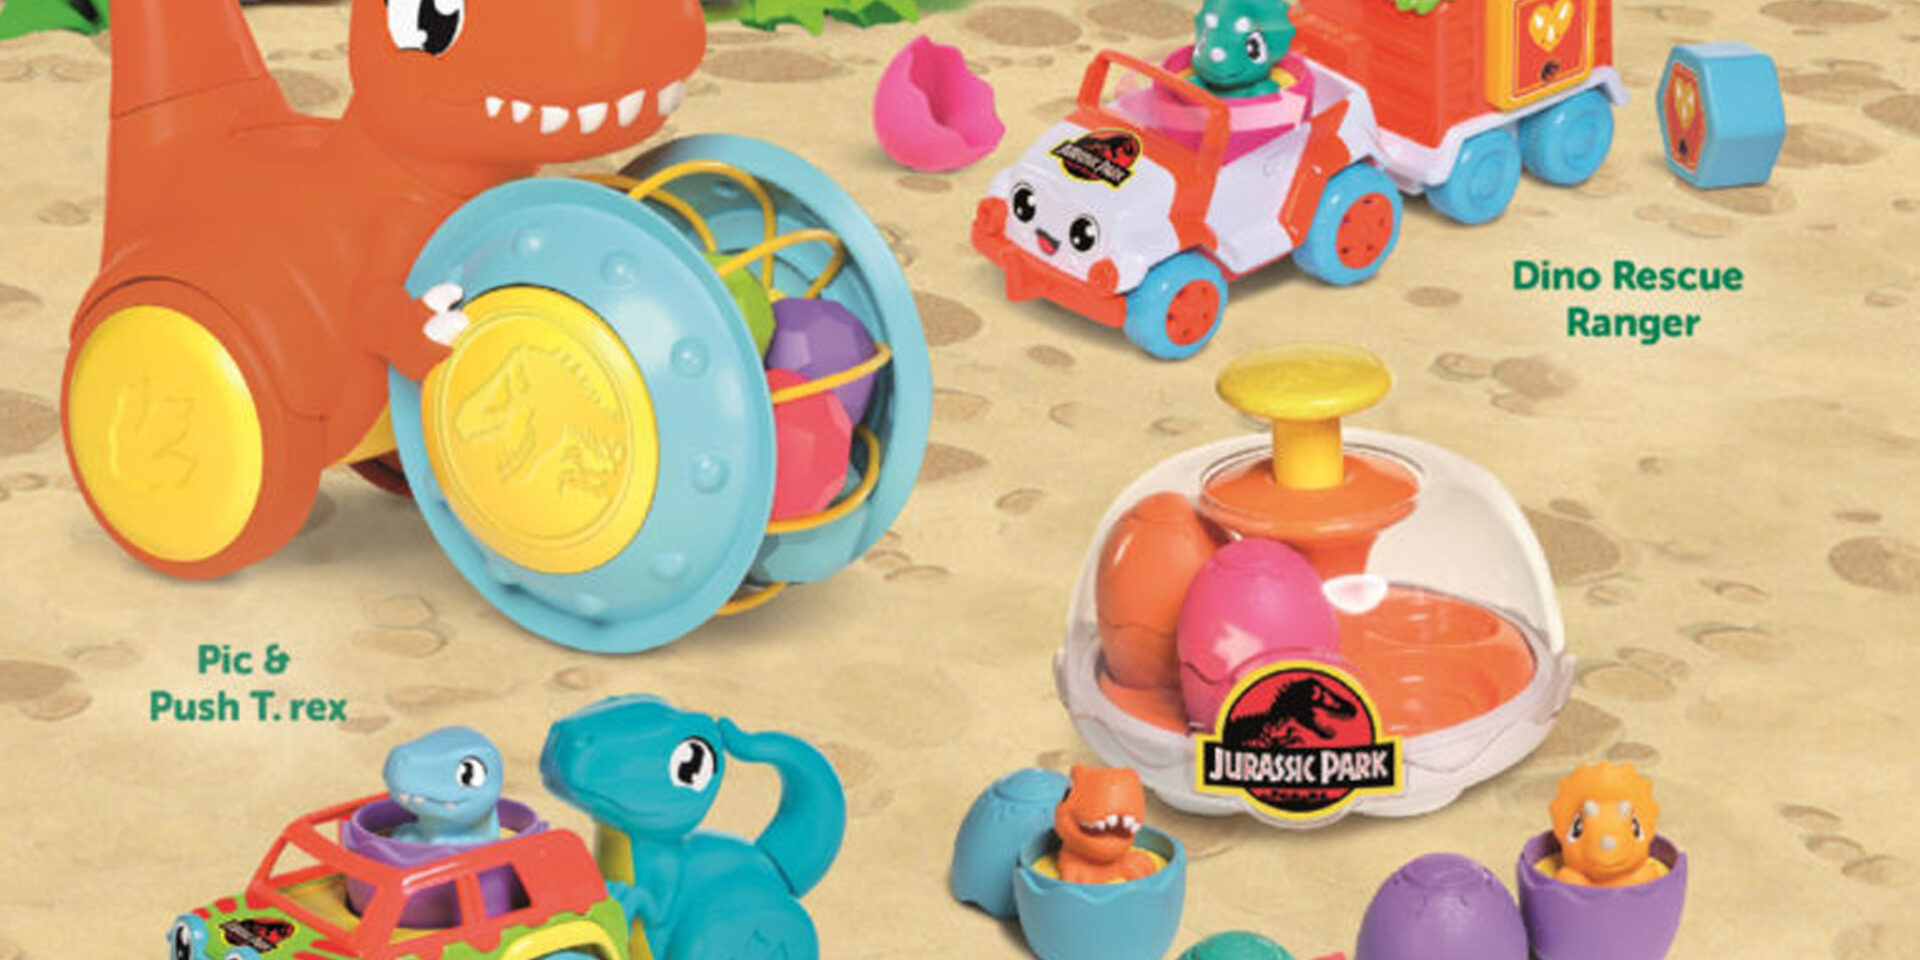 TOMY teams up with Universal for all-new Jurassic World licensed Toomies and Pop-Up T-Rex toys